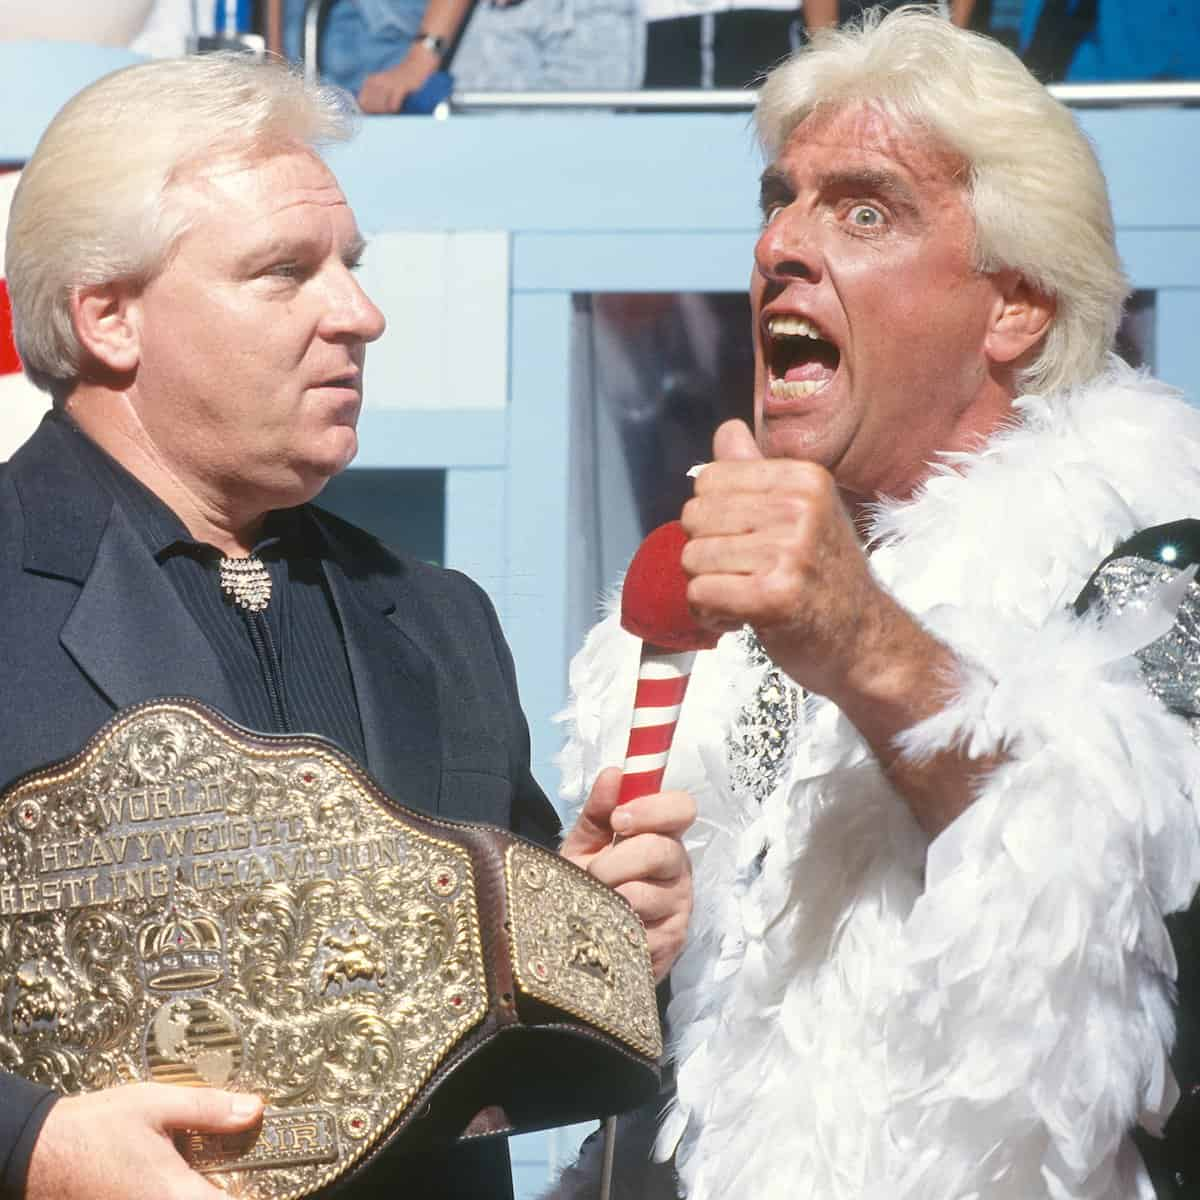 In one of the most shocking moments in wrestling history, Ric Flair debuts on WWF television for the very first time with Bobby Heenan alongside his NWA Championship Belt, WWF Prime Time Wrestling, September 9, 1991.